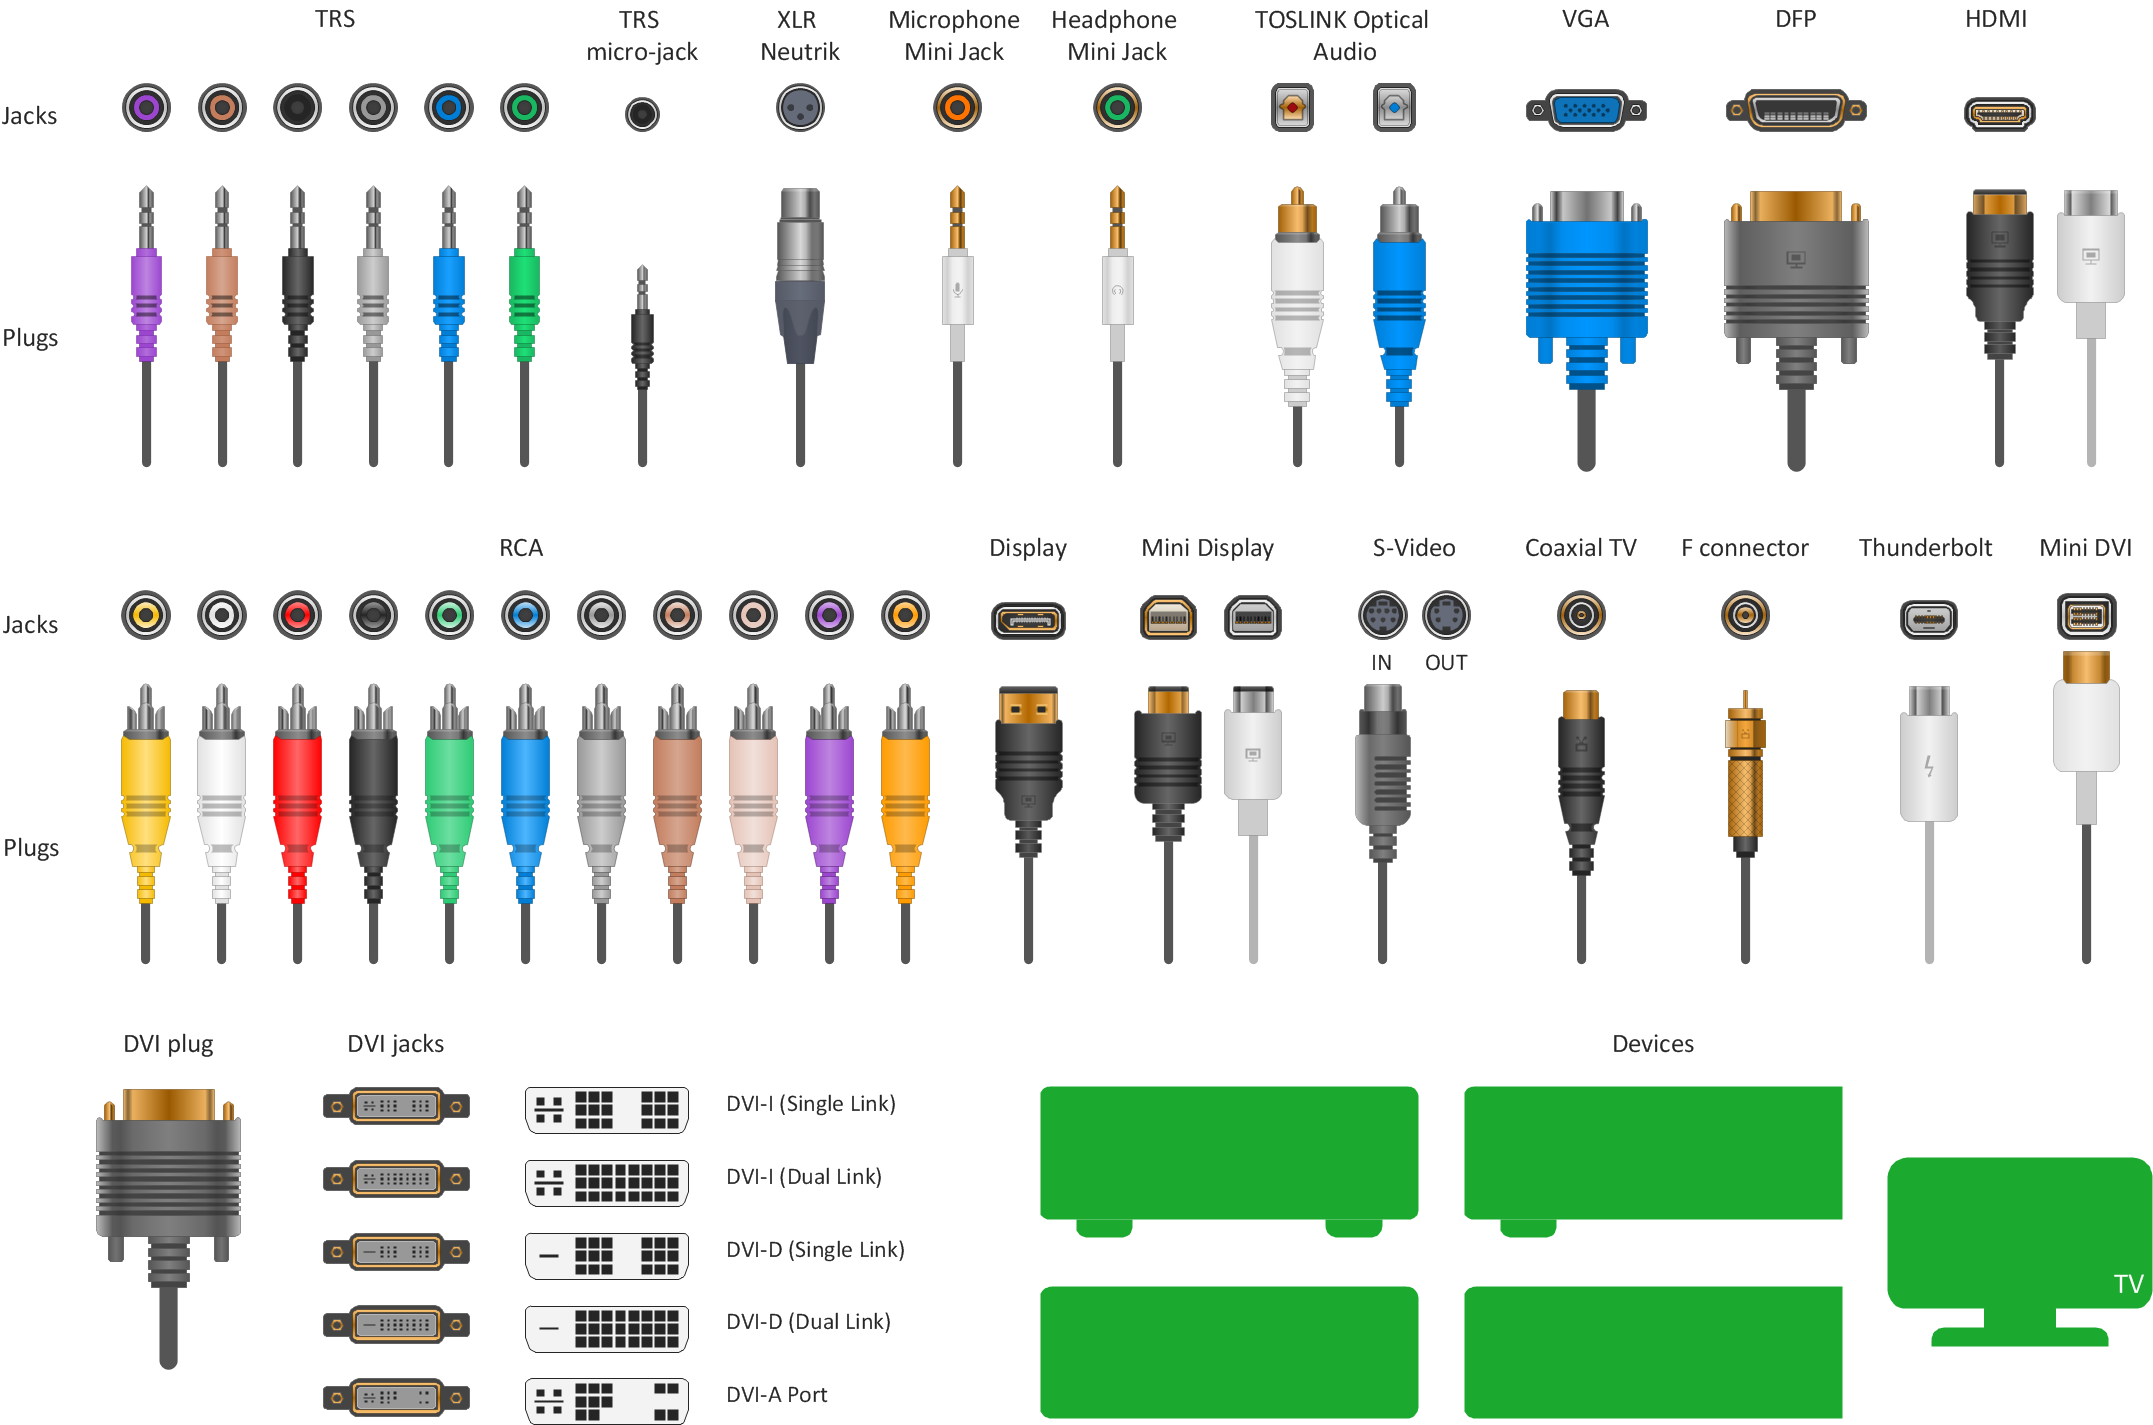 Electrical Symbols Terminals And Connectors Wiring Ethernet Wall Jacks Moreover Ether Jack Diagram Standard Universal Audio Video Connection Types